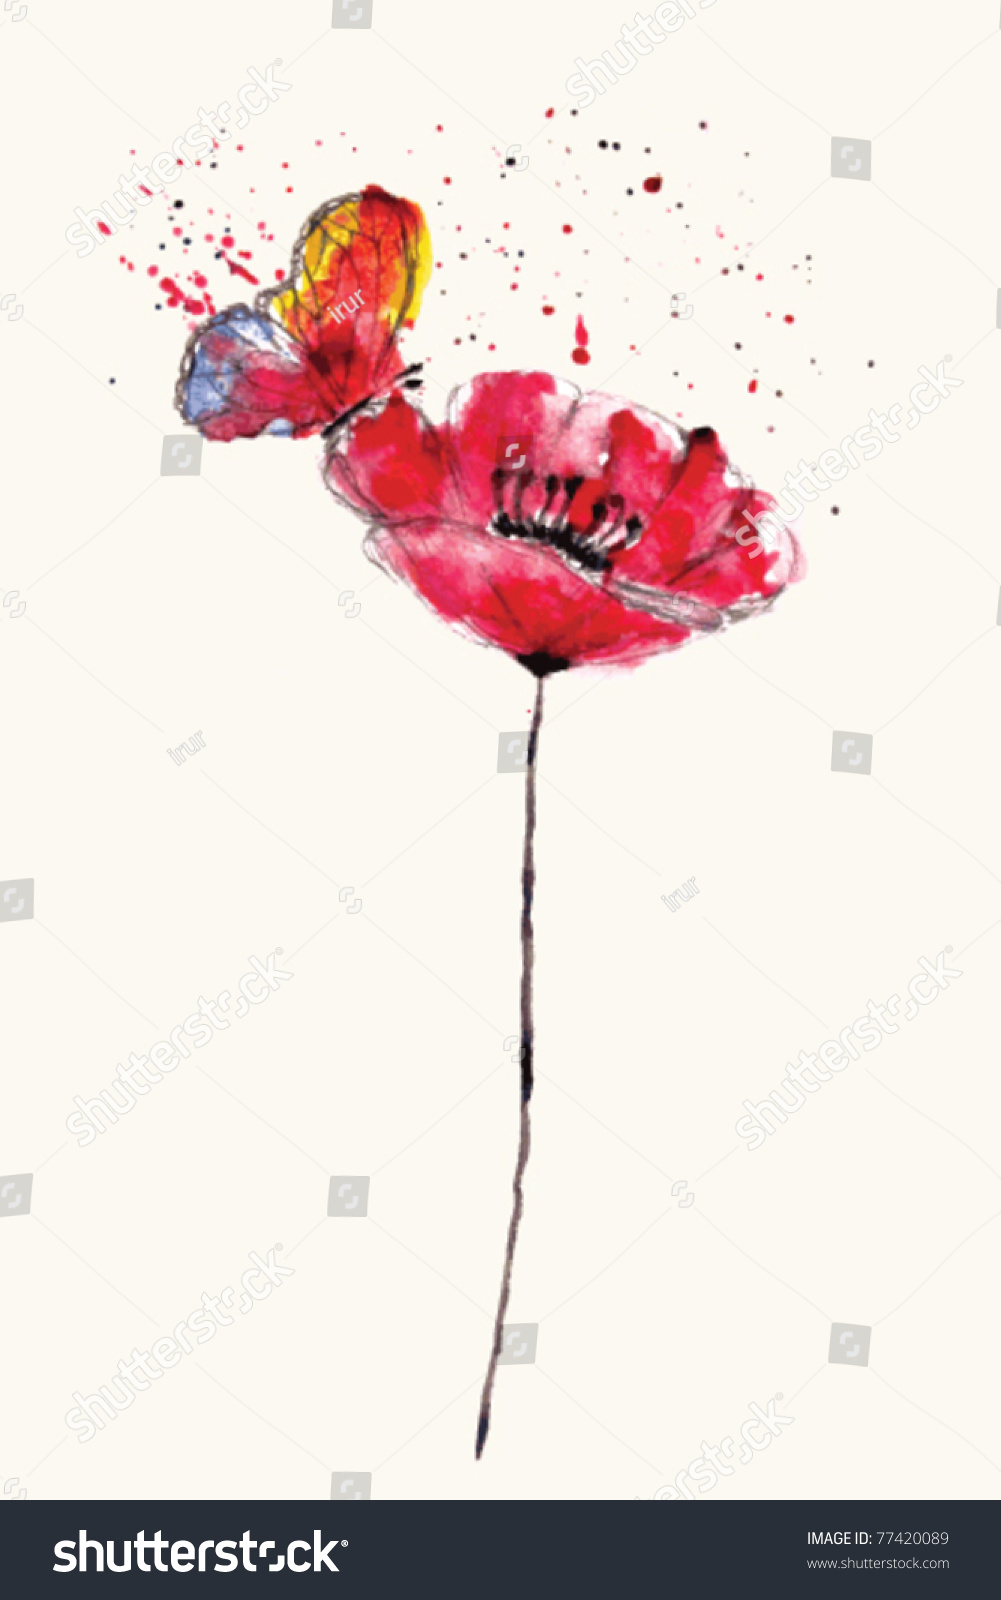 stylized painted watercolor poppy flower with bright